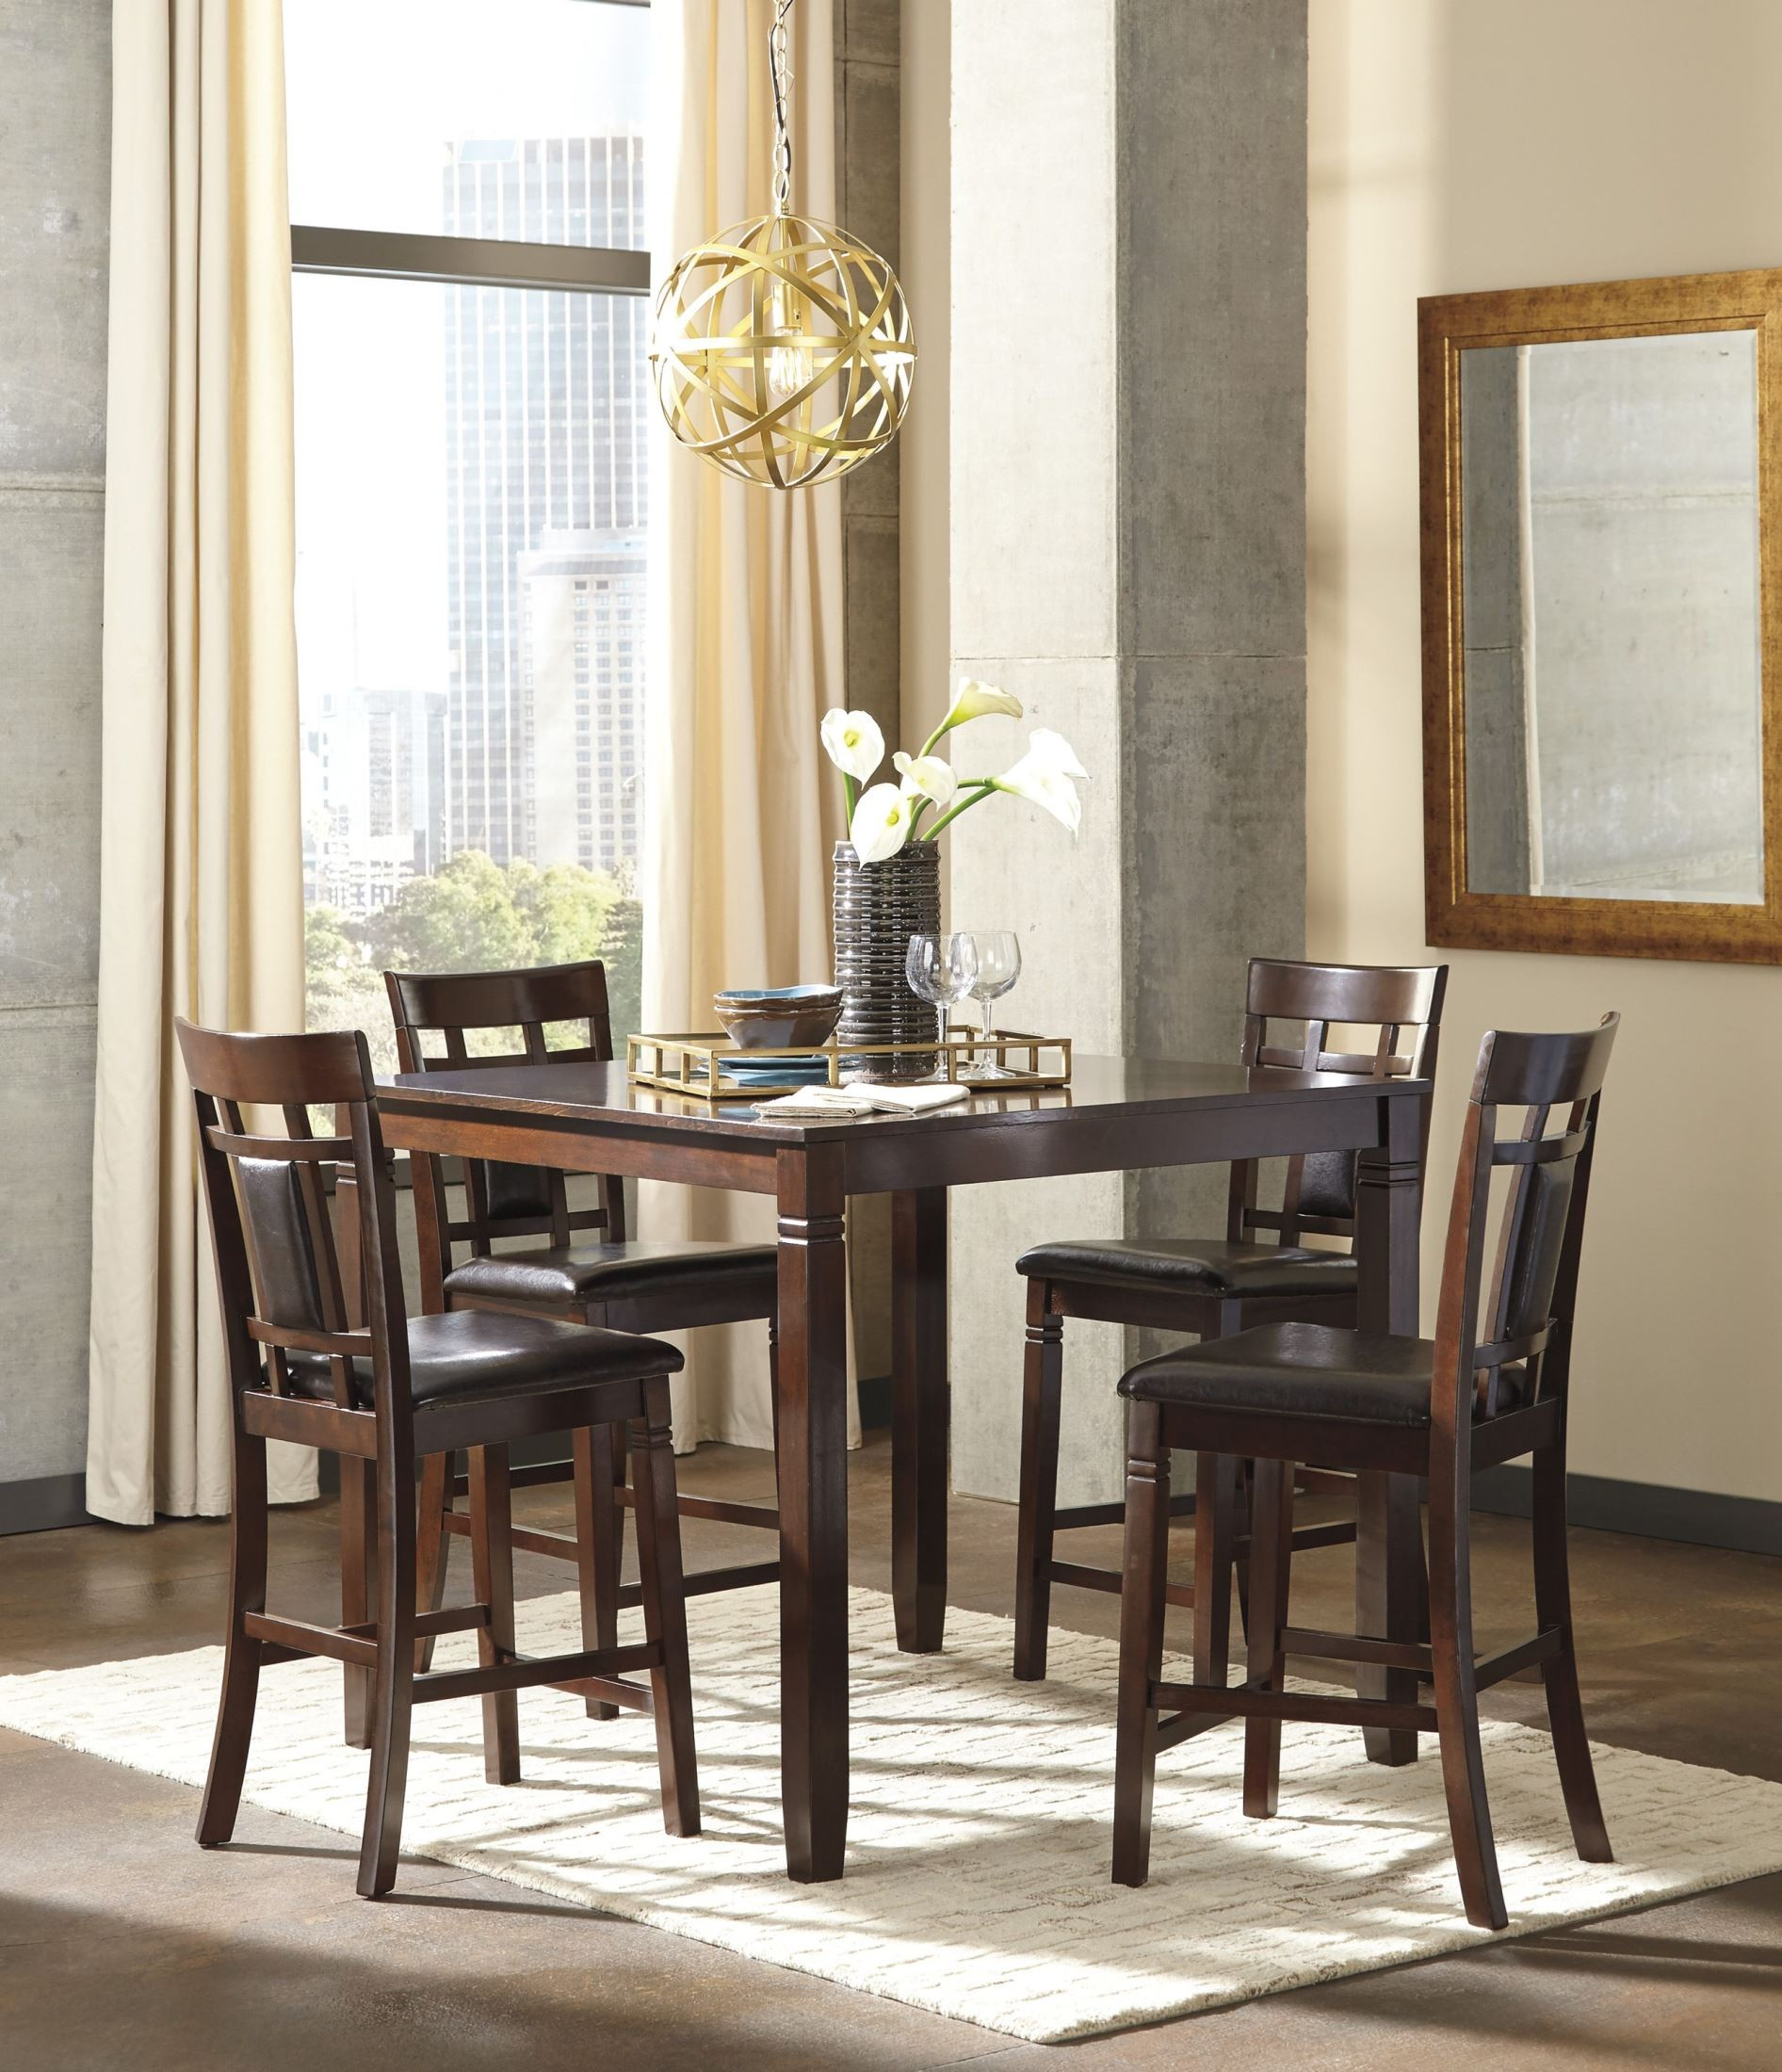 Dining Room Sets Dallas Tx: Ashley Bennox 5pc Counter Height Dining Set Dallas TX